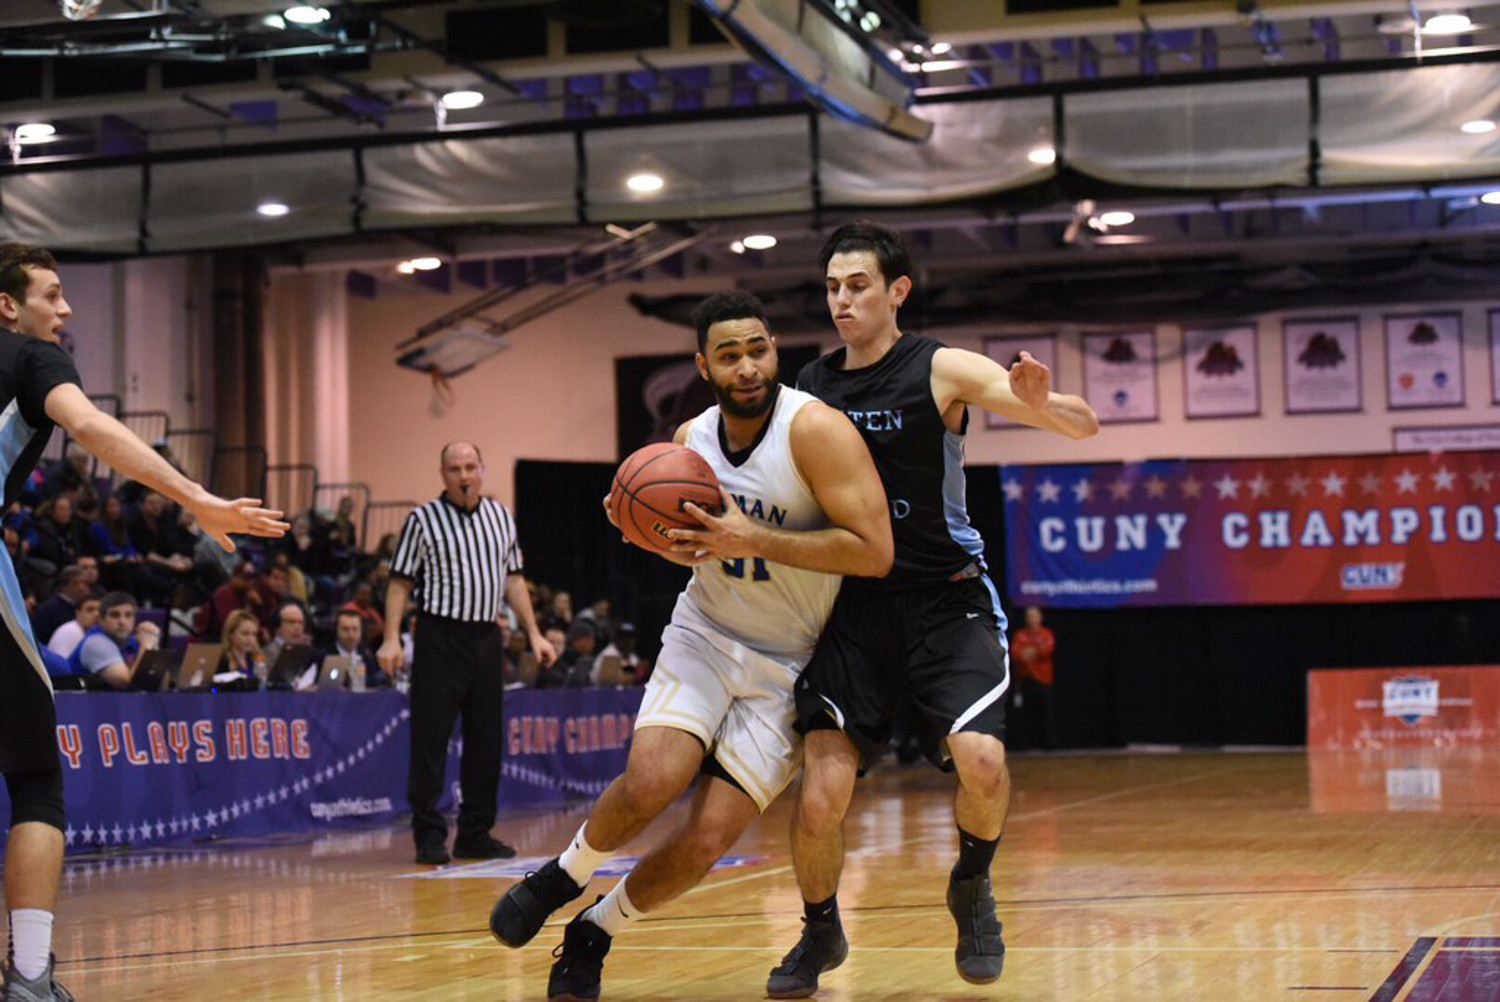 Lehman senior Andrew Utate drives around a Staten Island defender in last Friday's CUNYAC championship game. Utate scored 24 points in a narrow loss to the Dolphins.